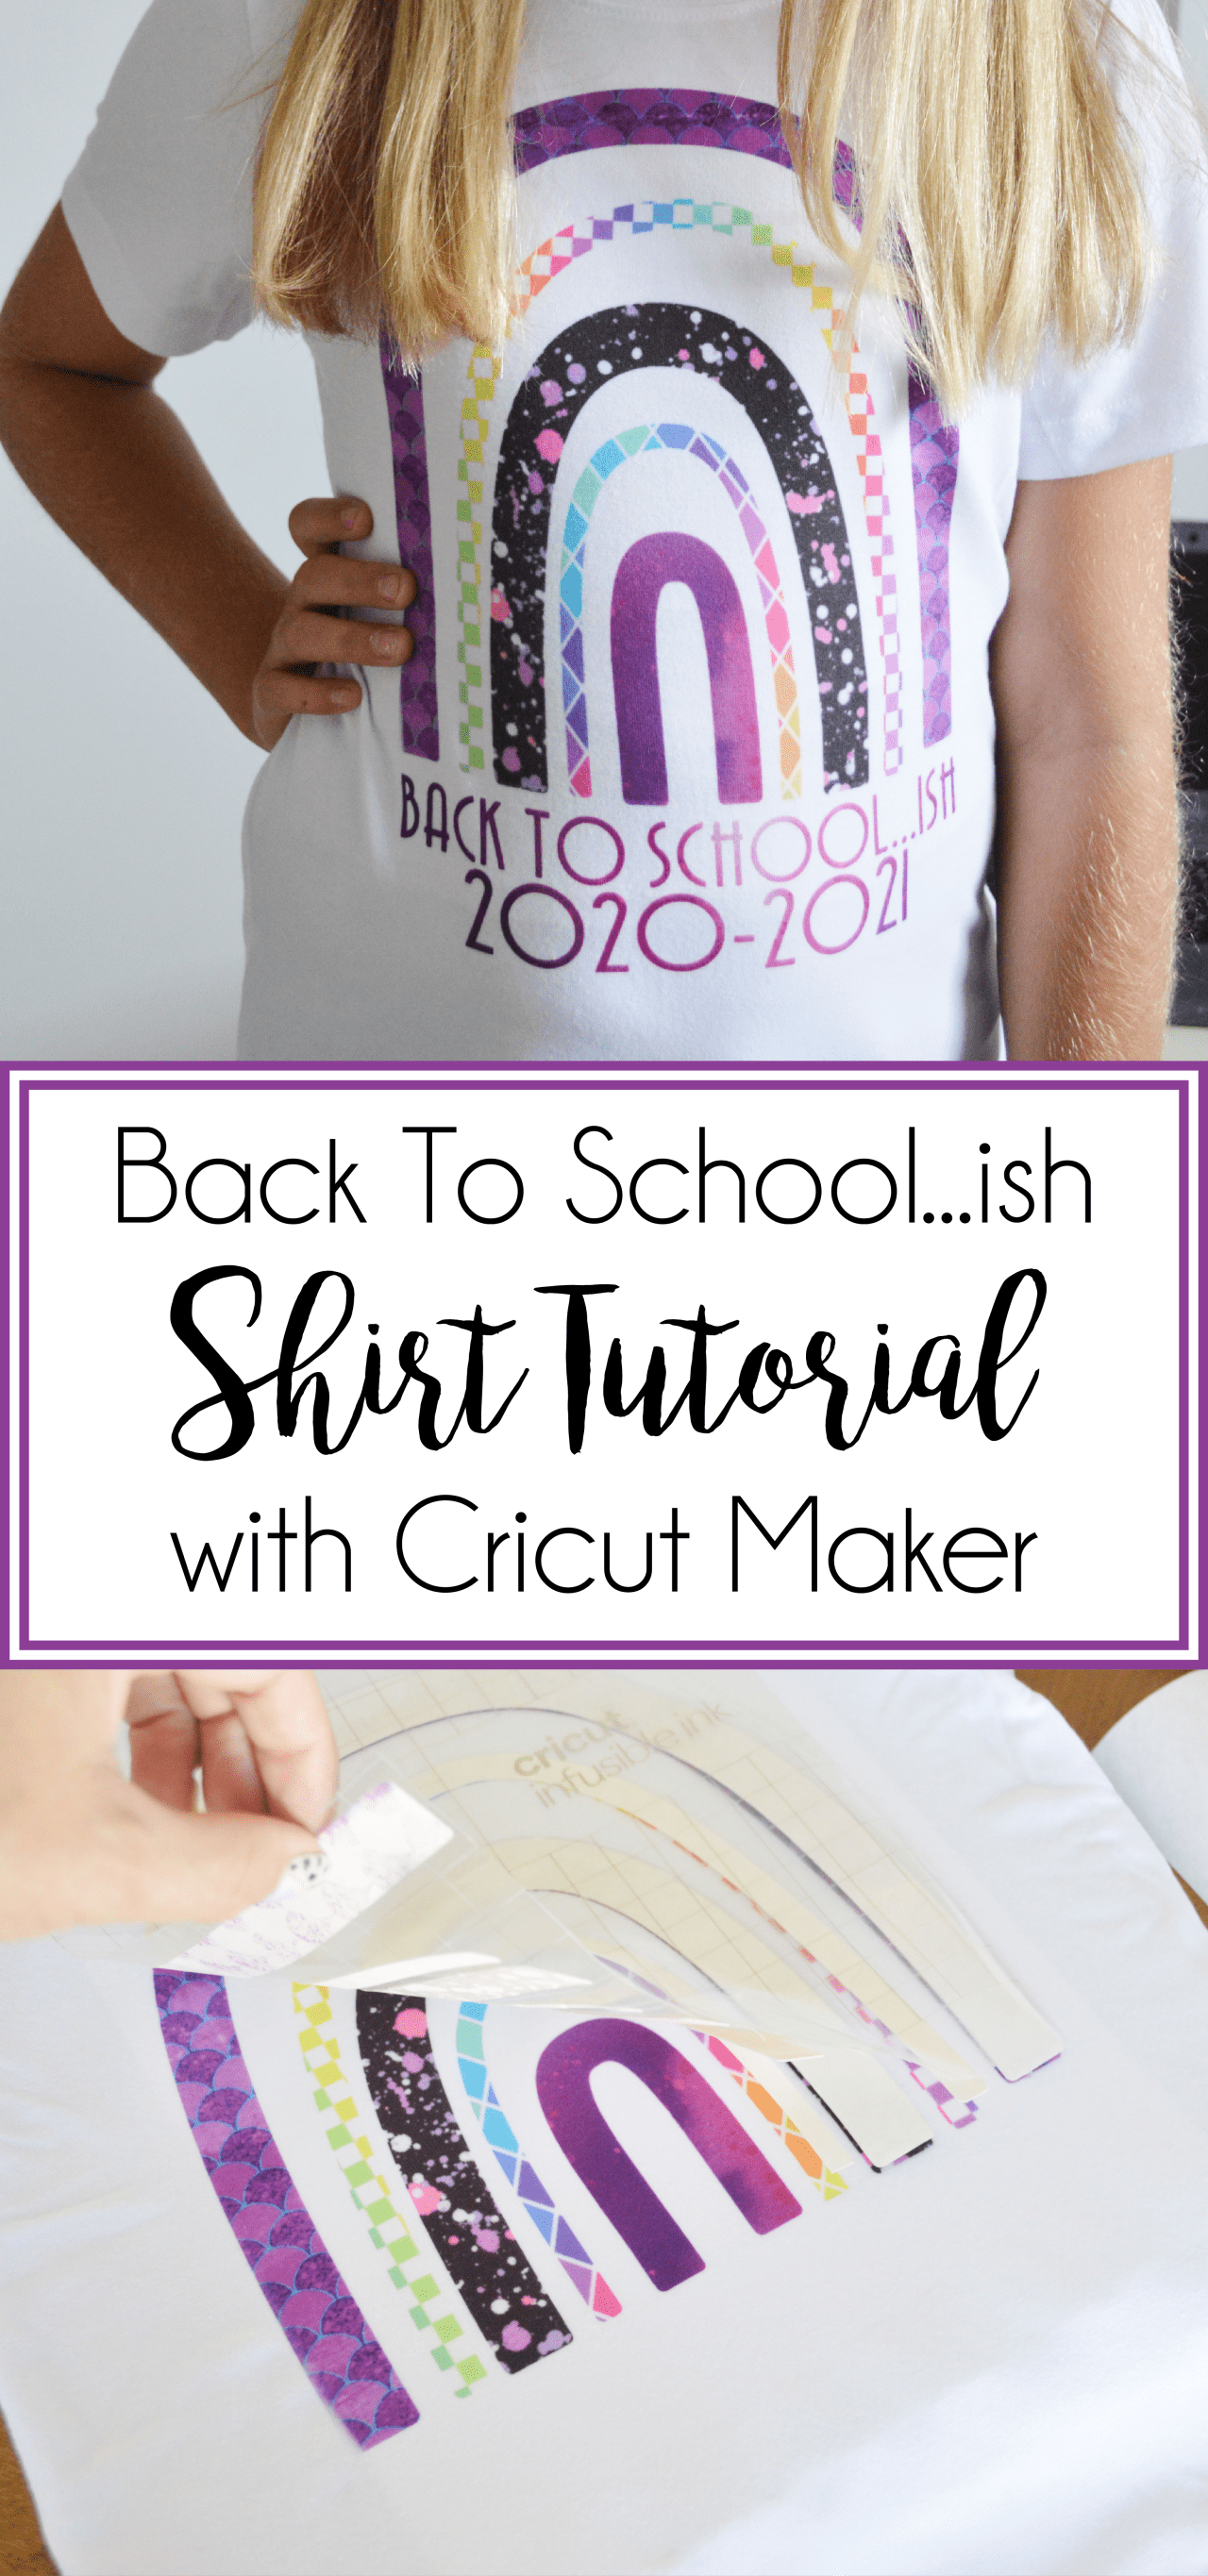 Obsessed with this adorable back to school t-shirt ideafrom Our Thrifty Ideas! Is there a better way to describe this year than Back to School-ish?